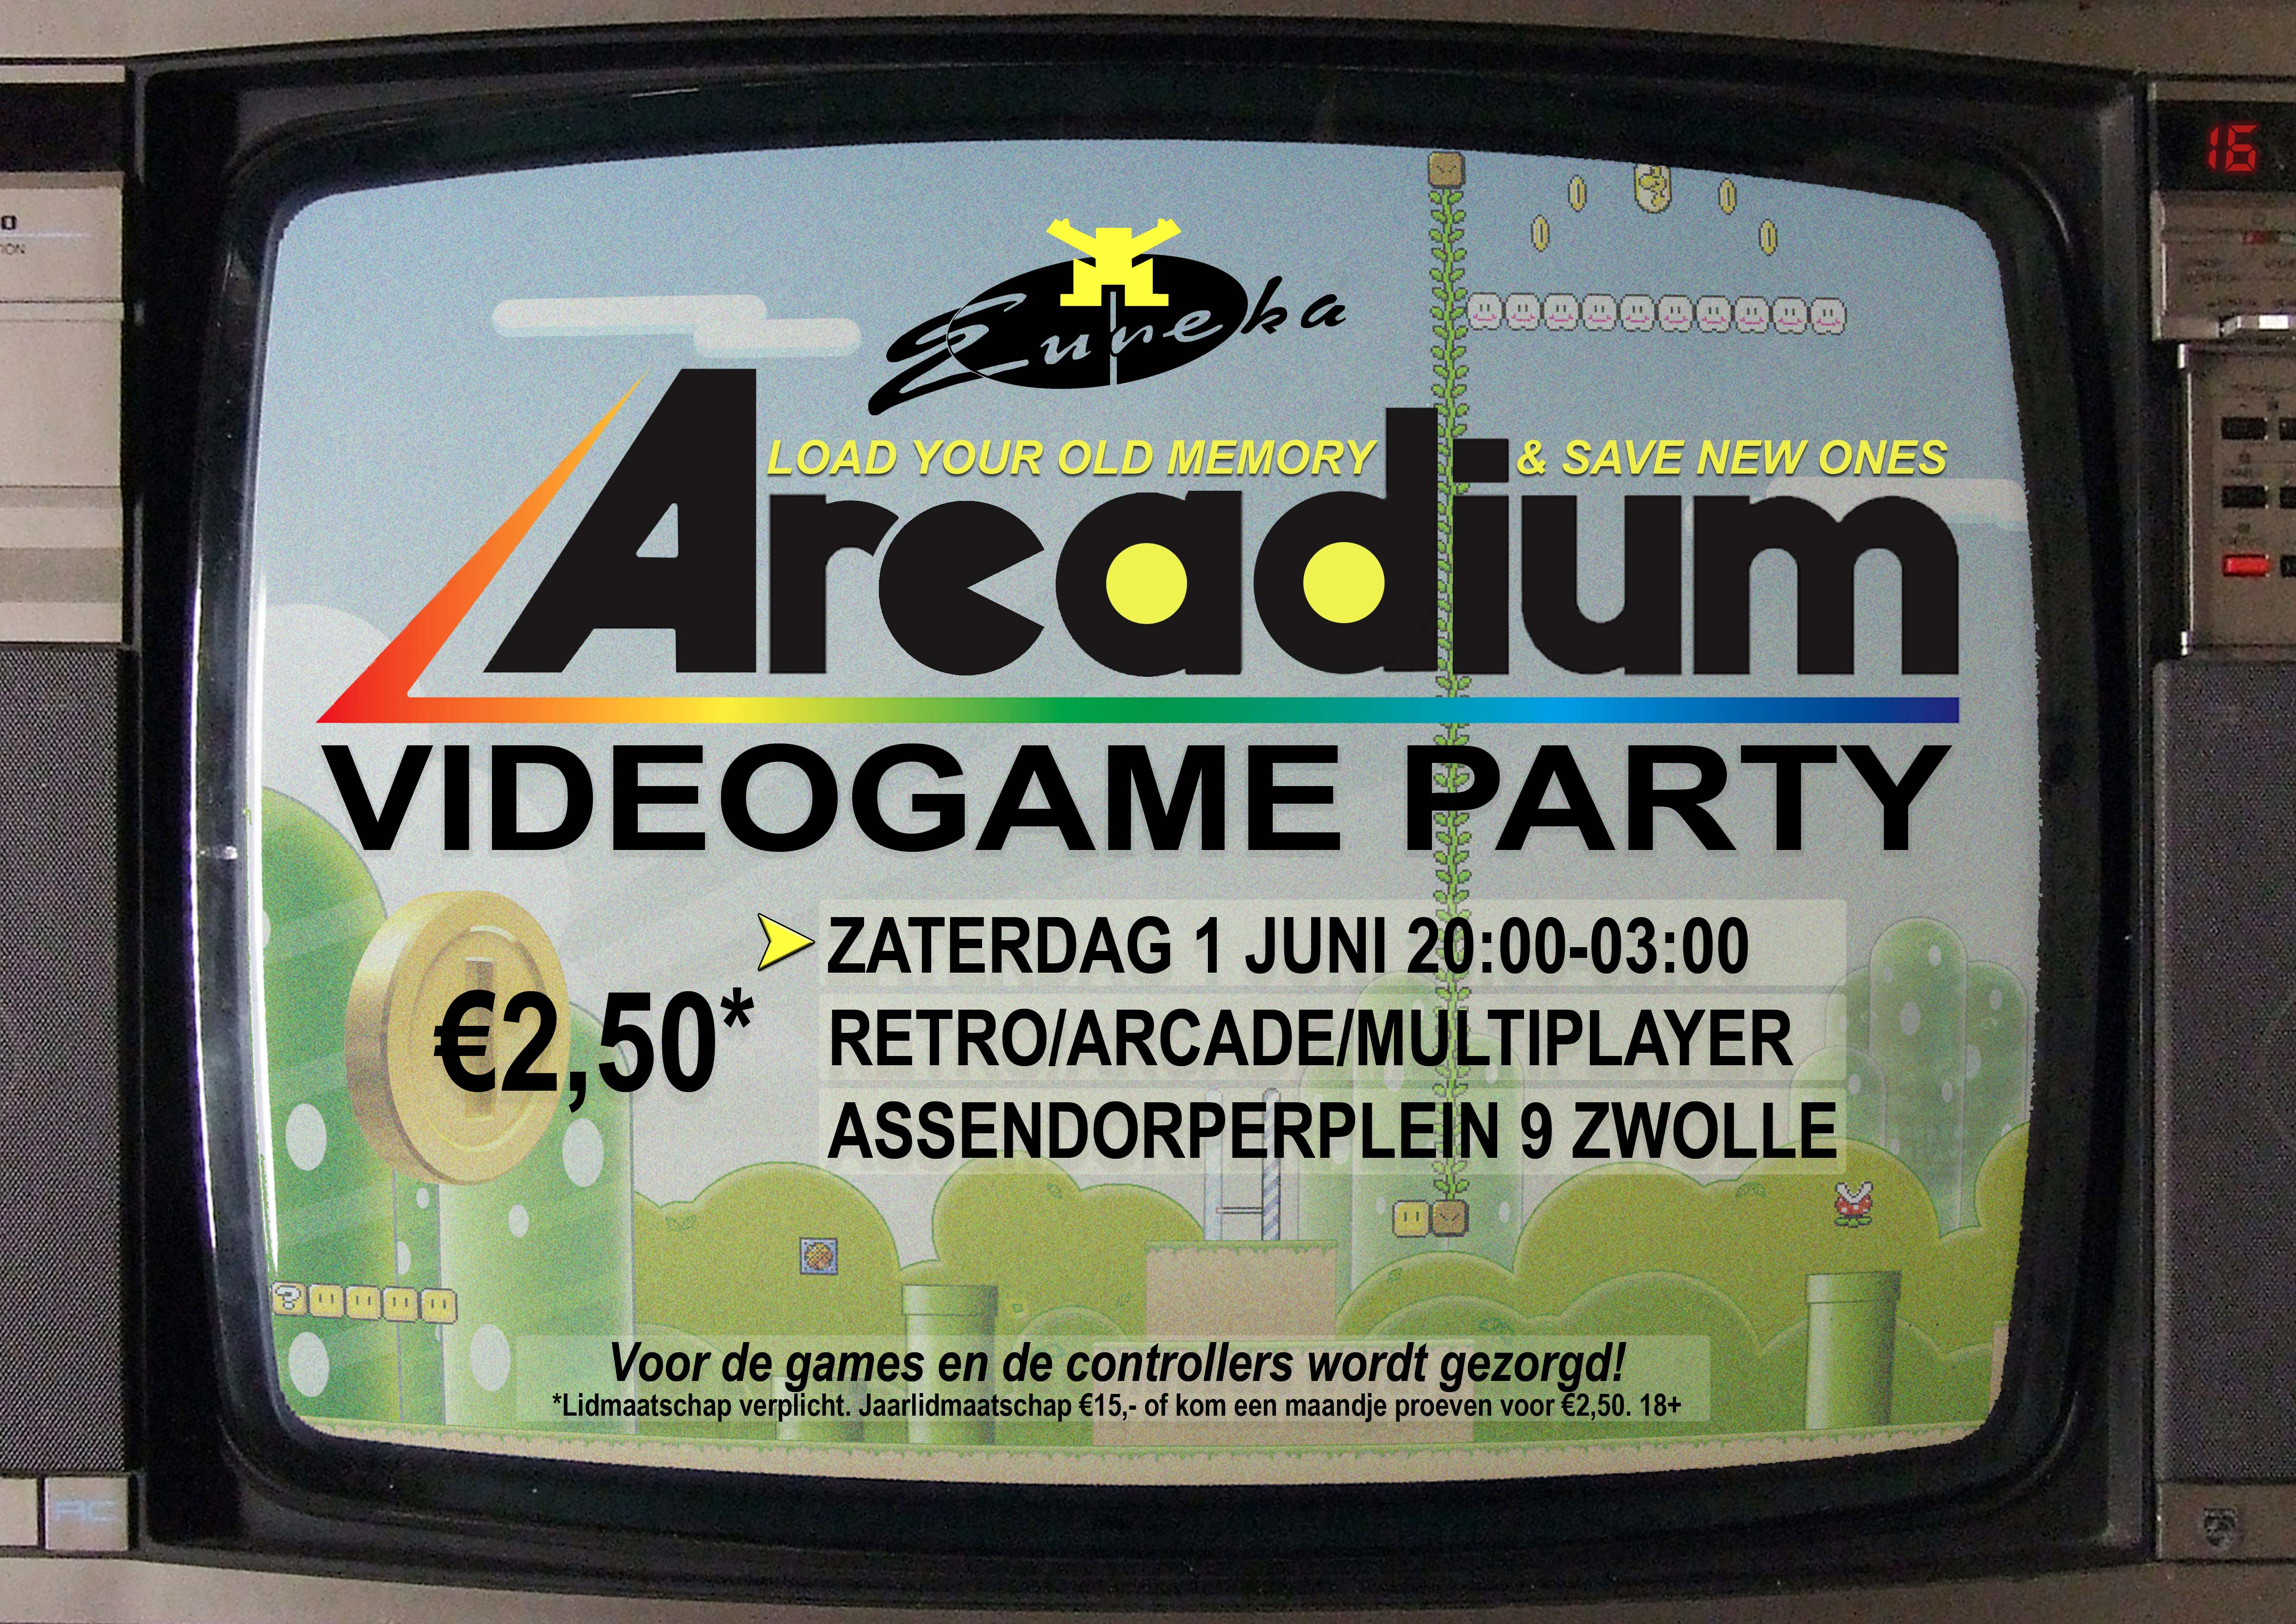 Gameparty Arcadium in Zwolle